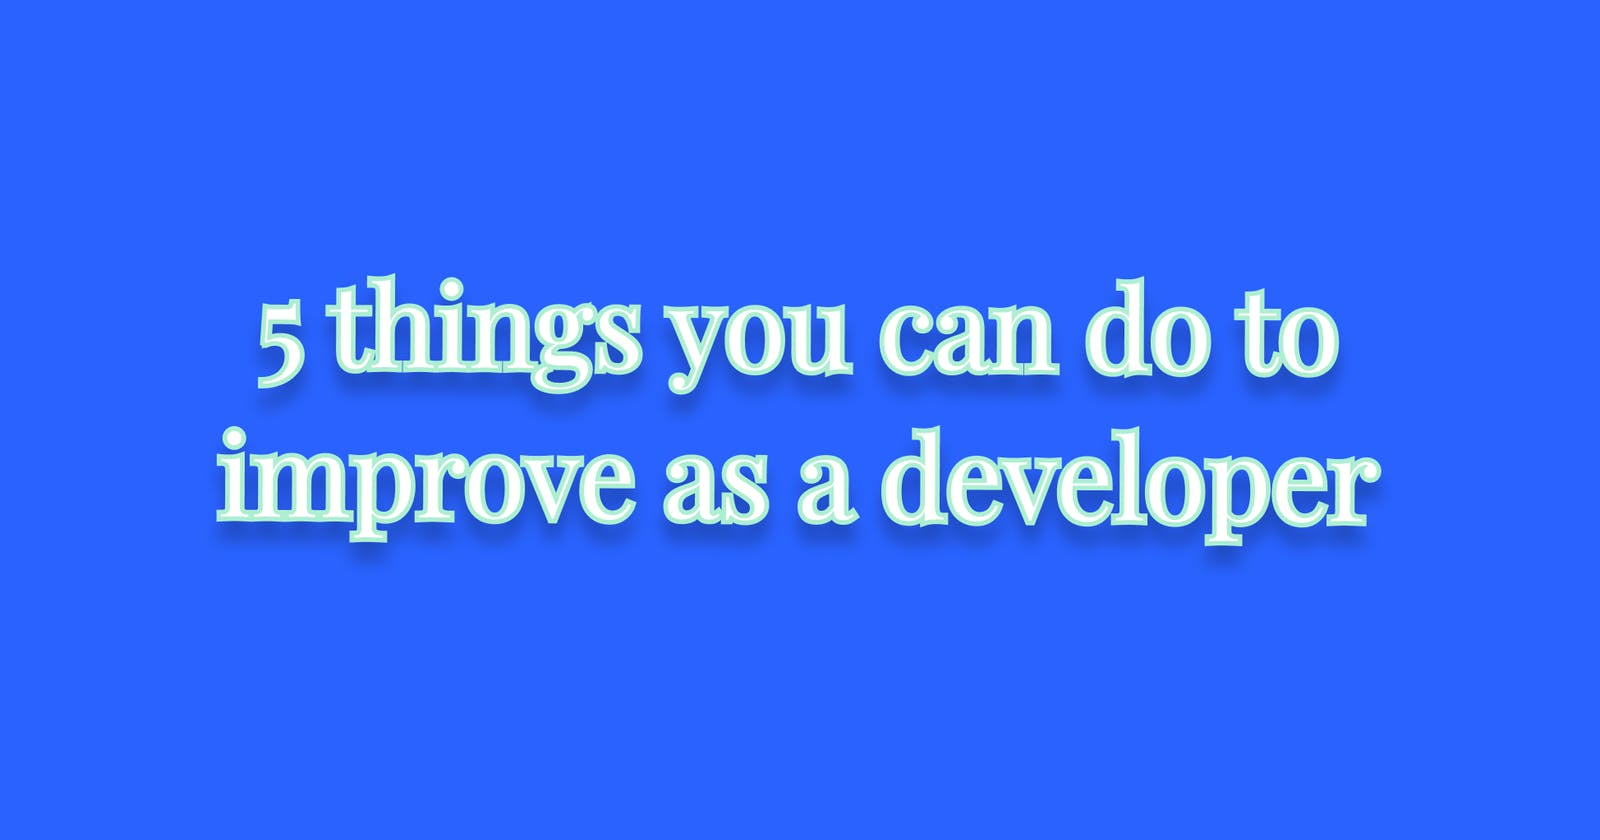 5 things you can do to improve as a developer